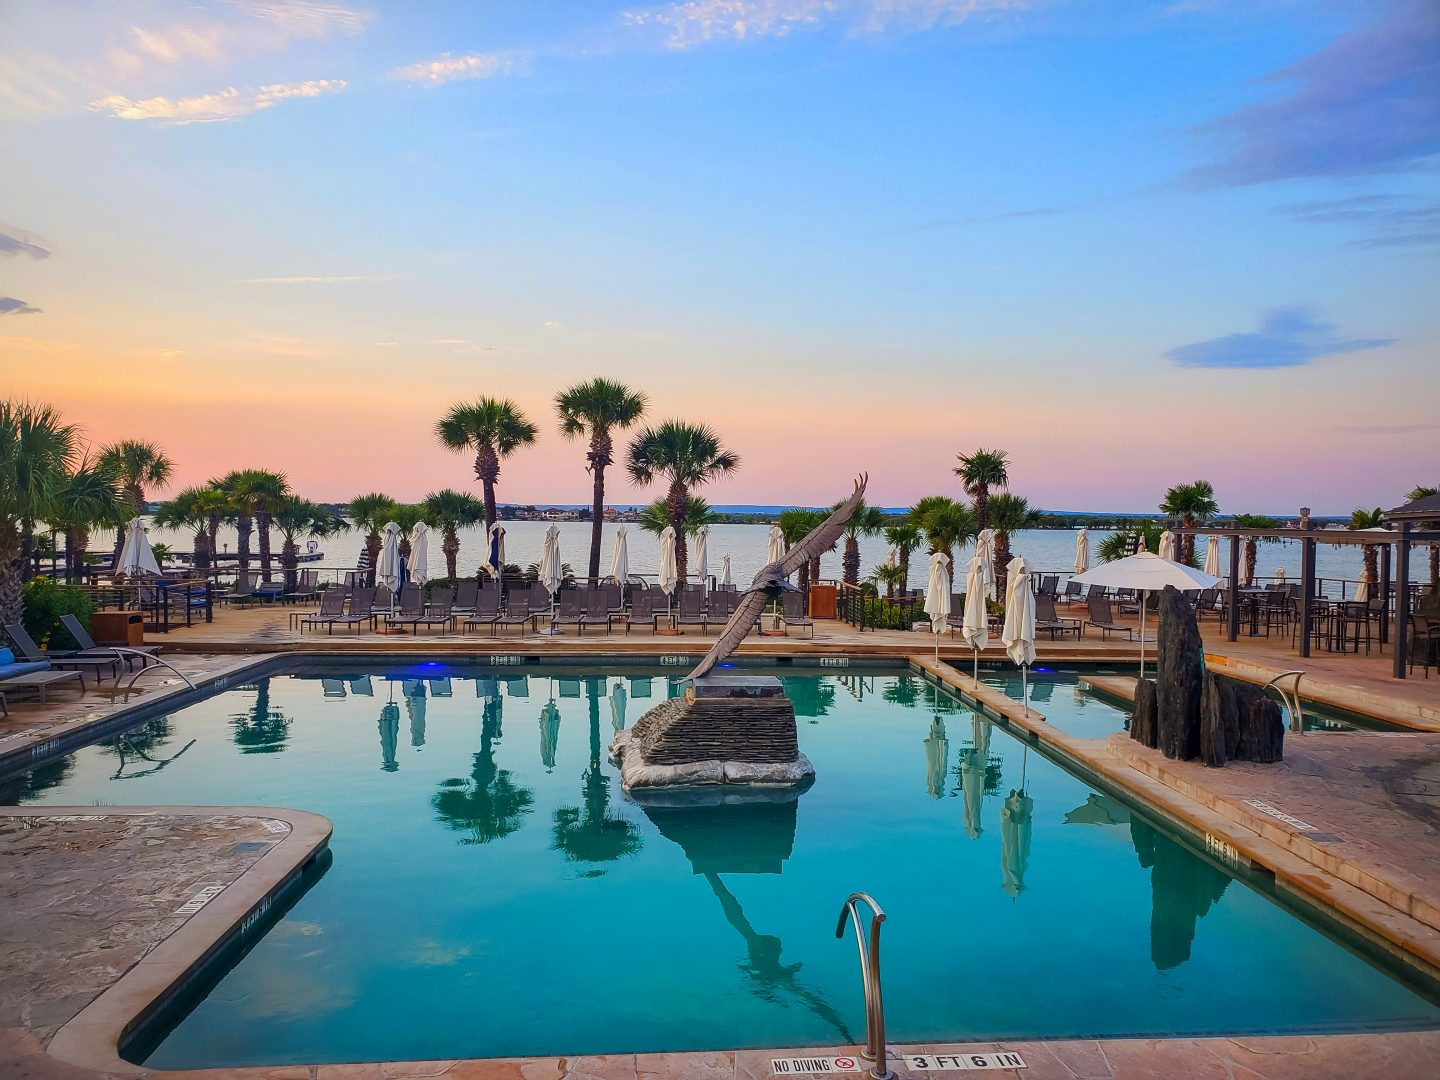 Horseshoe Bay Resort The Most Tropical Texas Vacation Spots You Must Visit